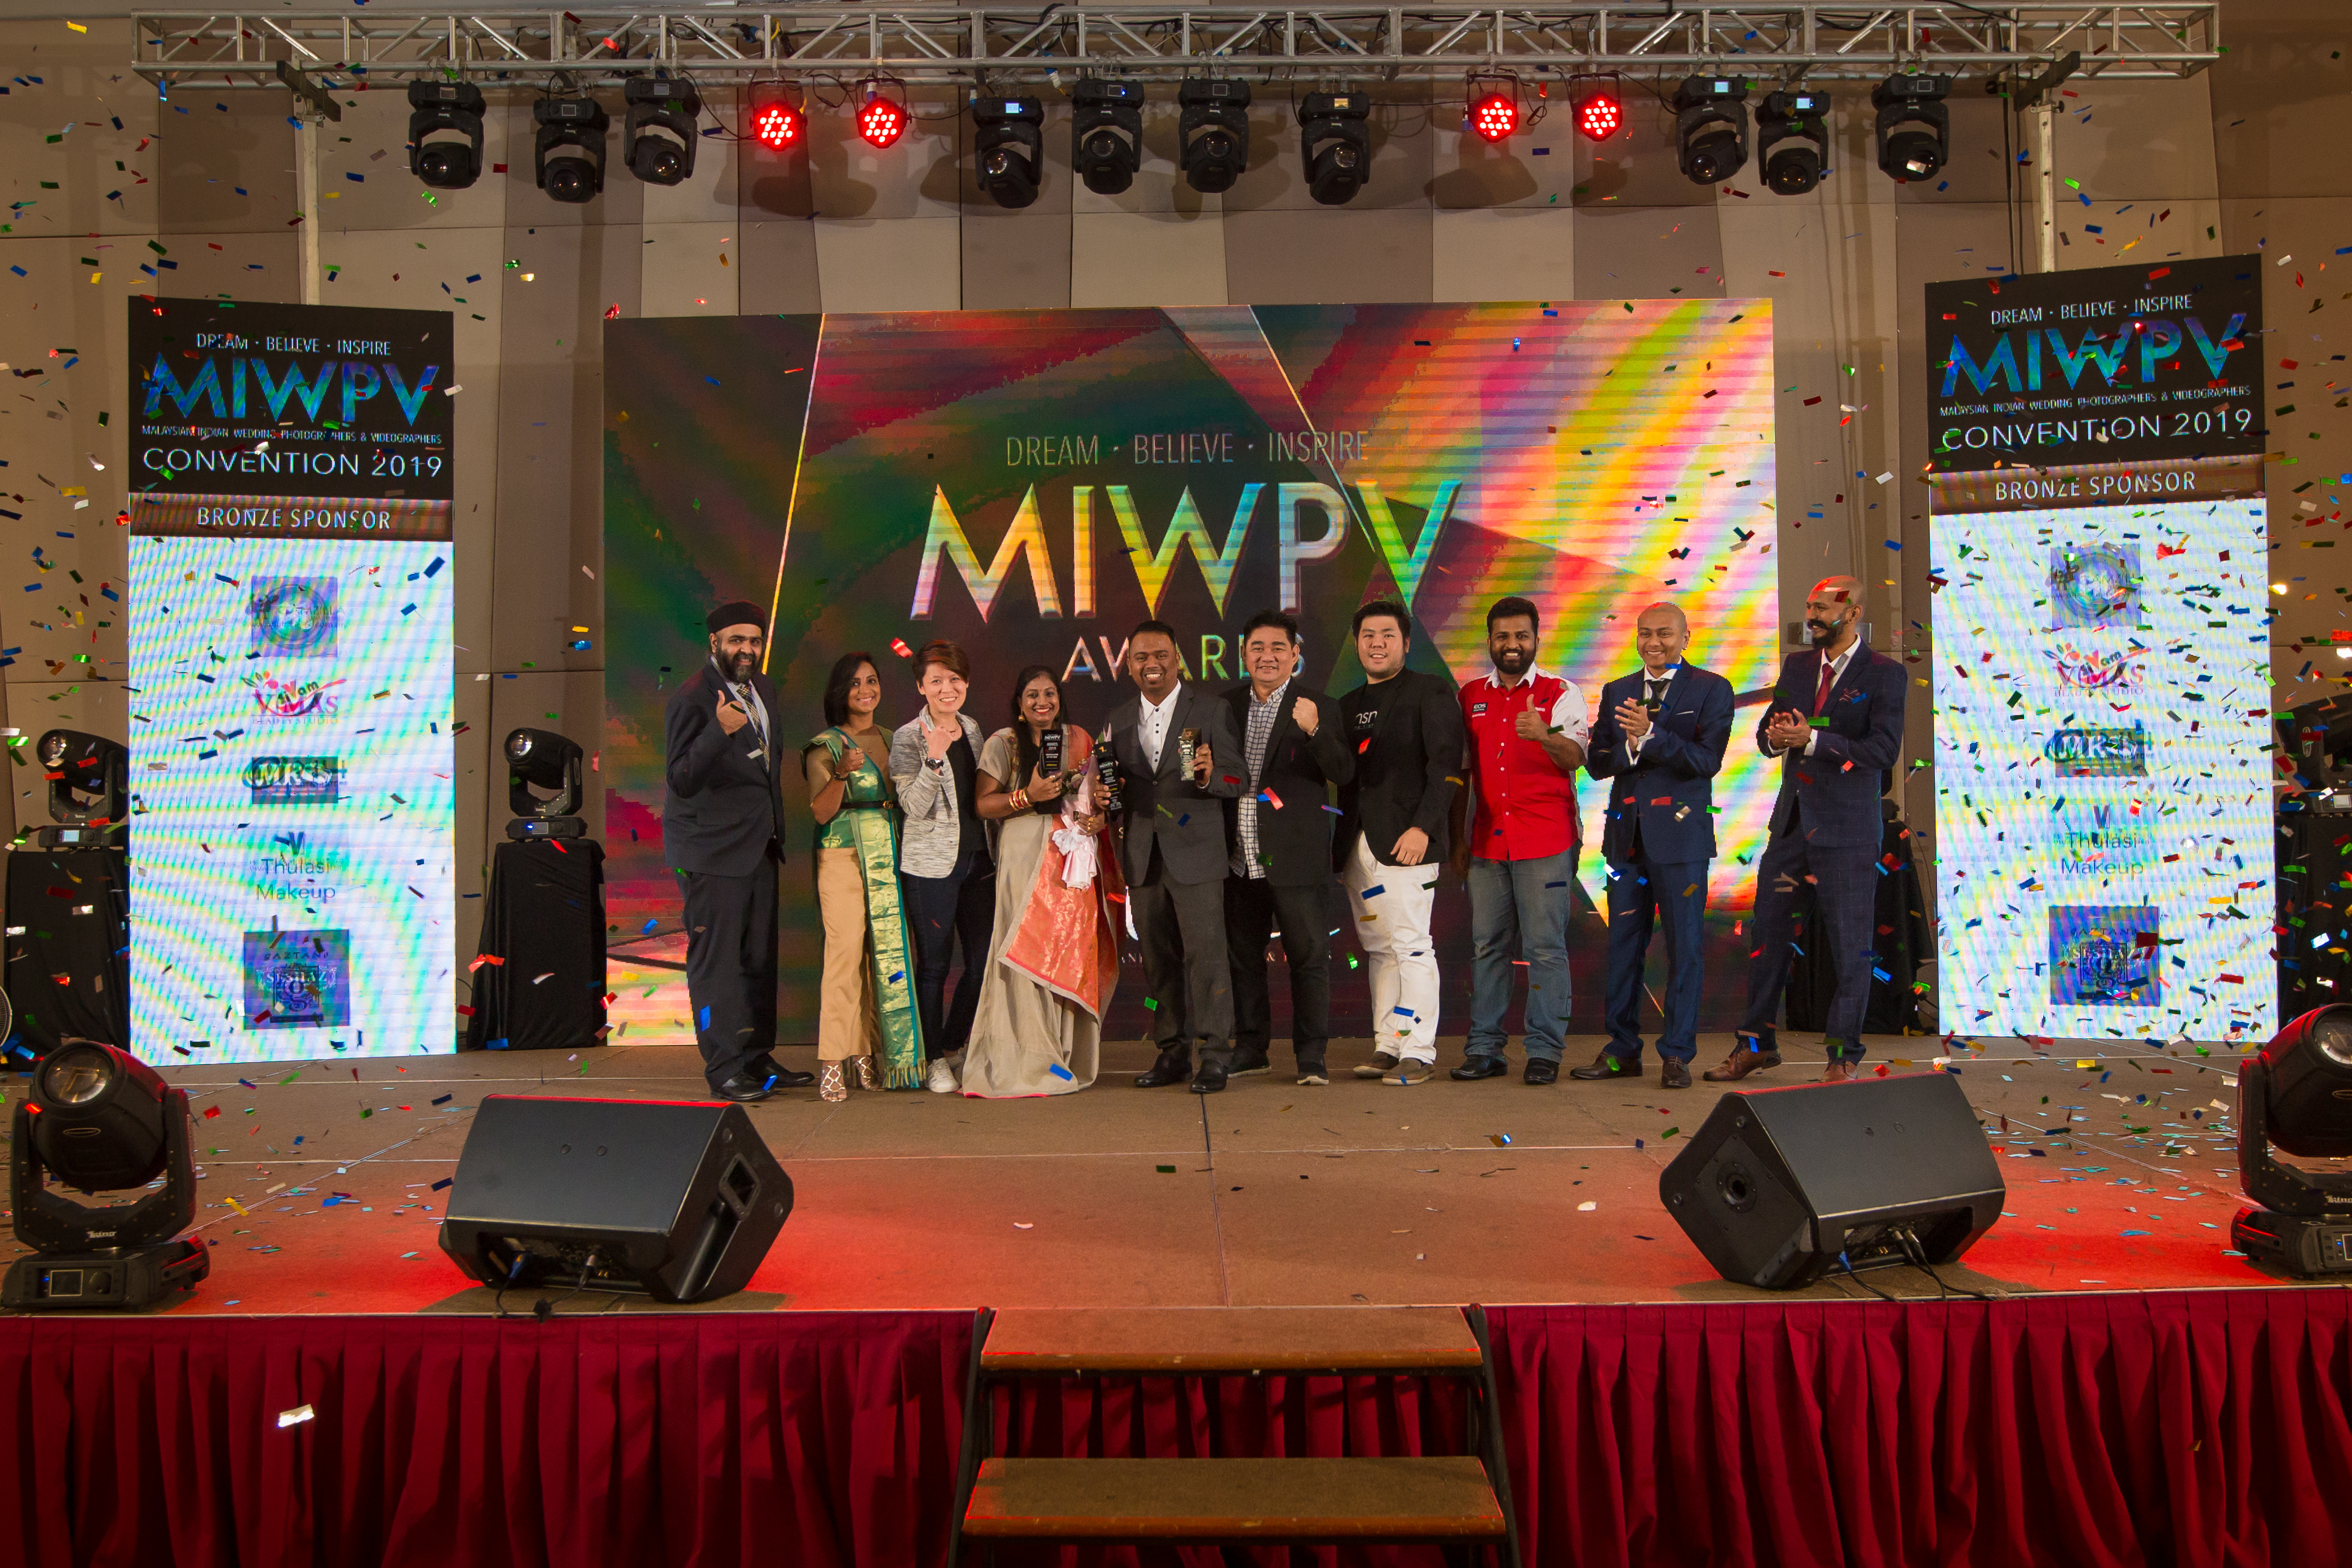 Photo courtesy: MIWPV Convention